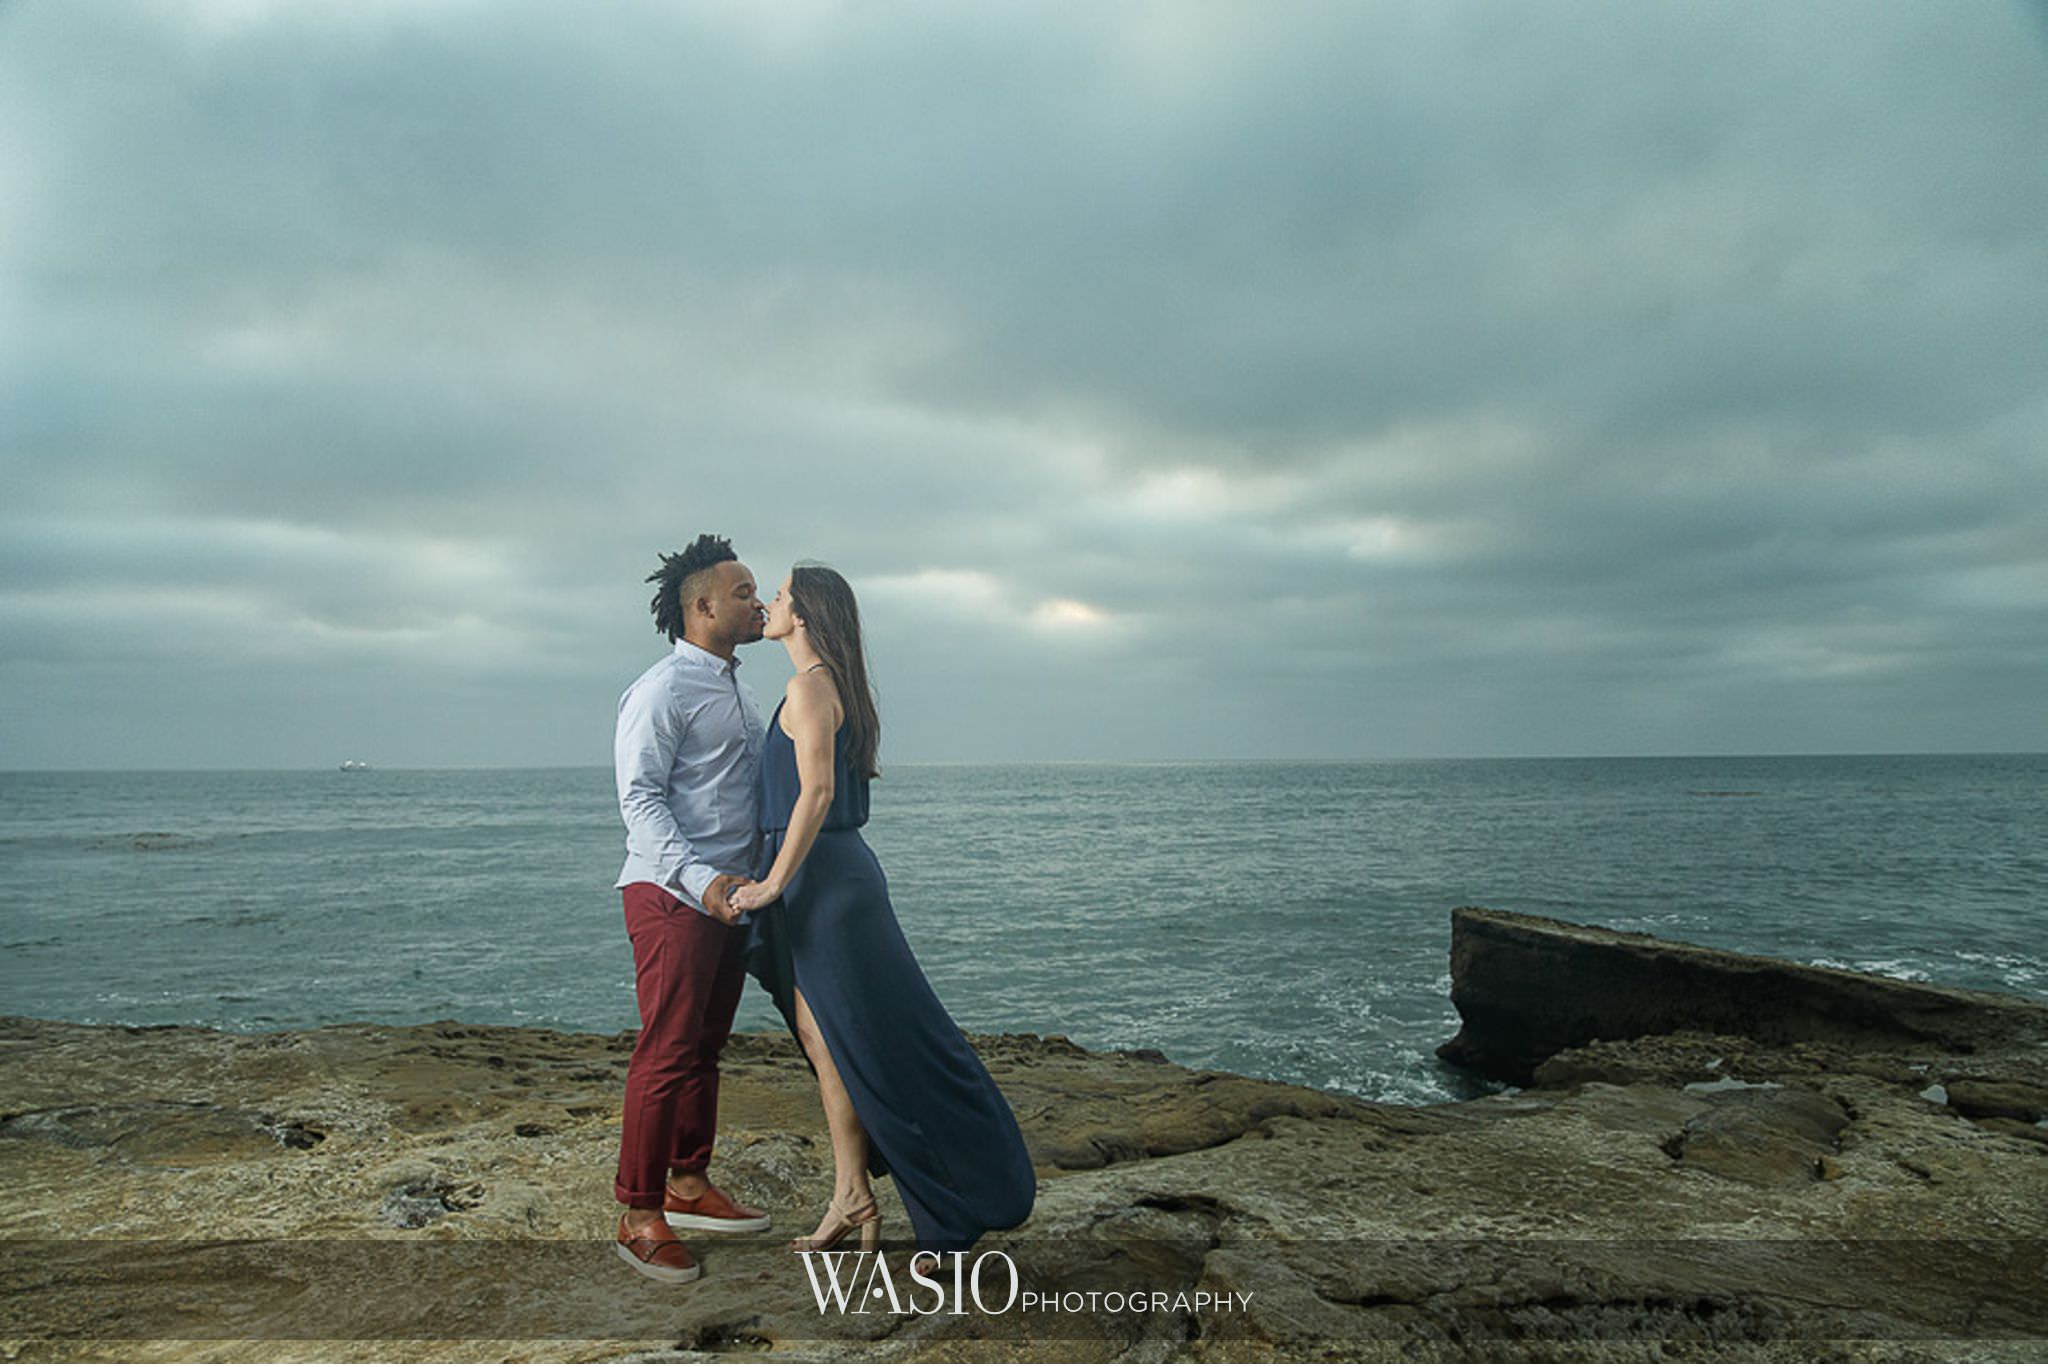 Sunset-Cliffs-San-Diego-Engagement-dreamy-photos-inspiration-board-64 Sunset Cliffs San Diego Engagement - Laura and La Broi